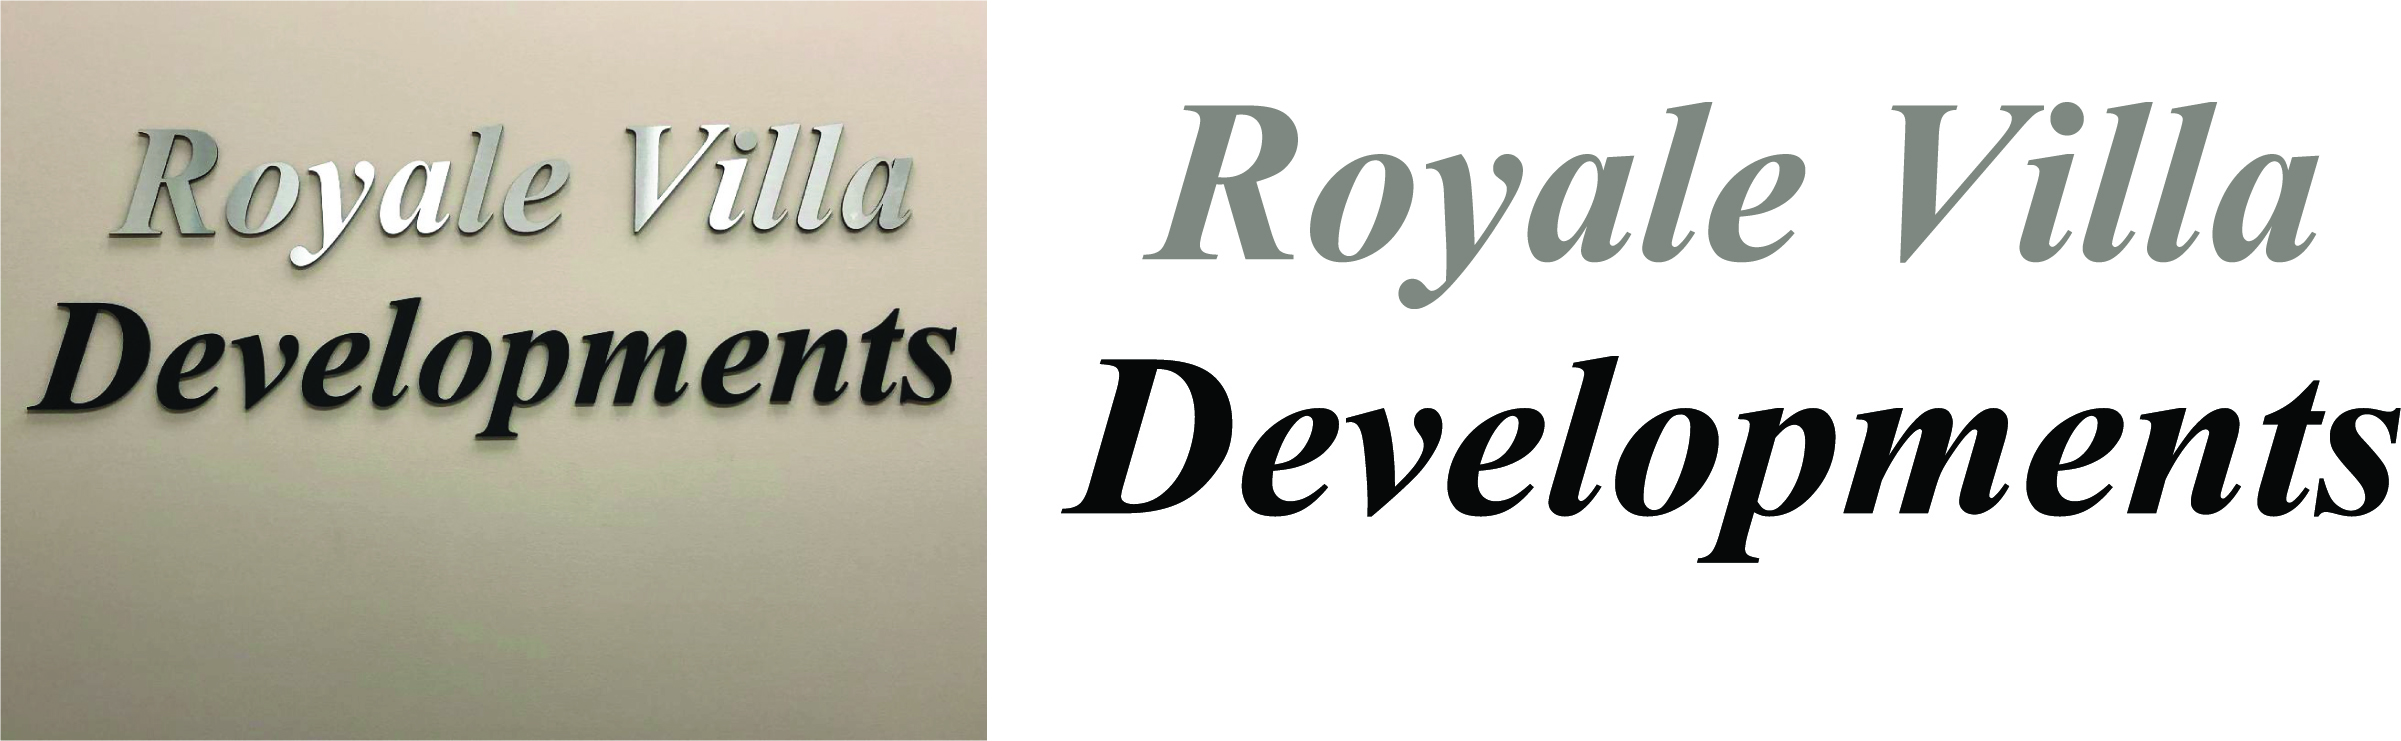 Royale Villa Developments